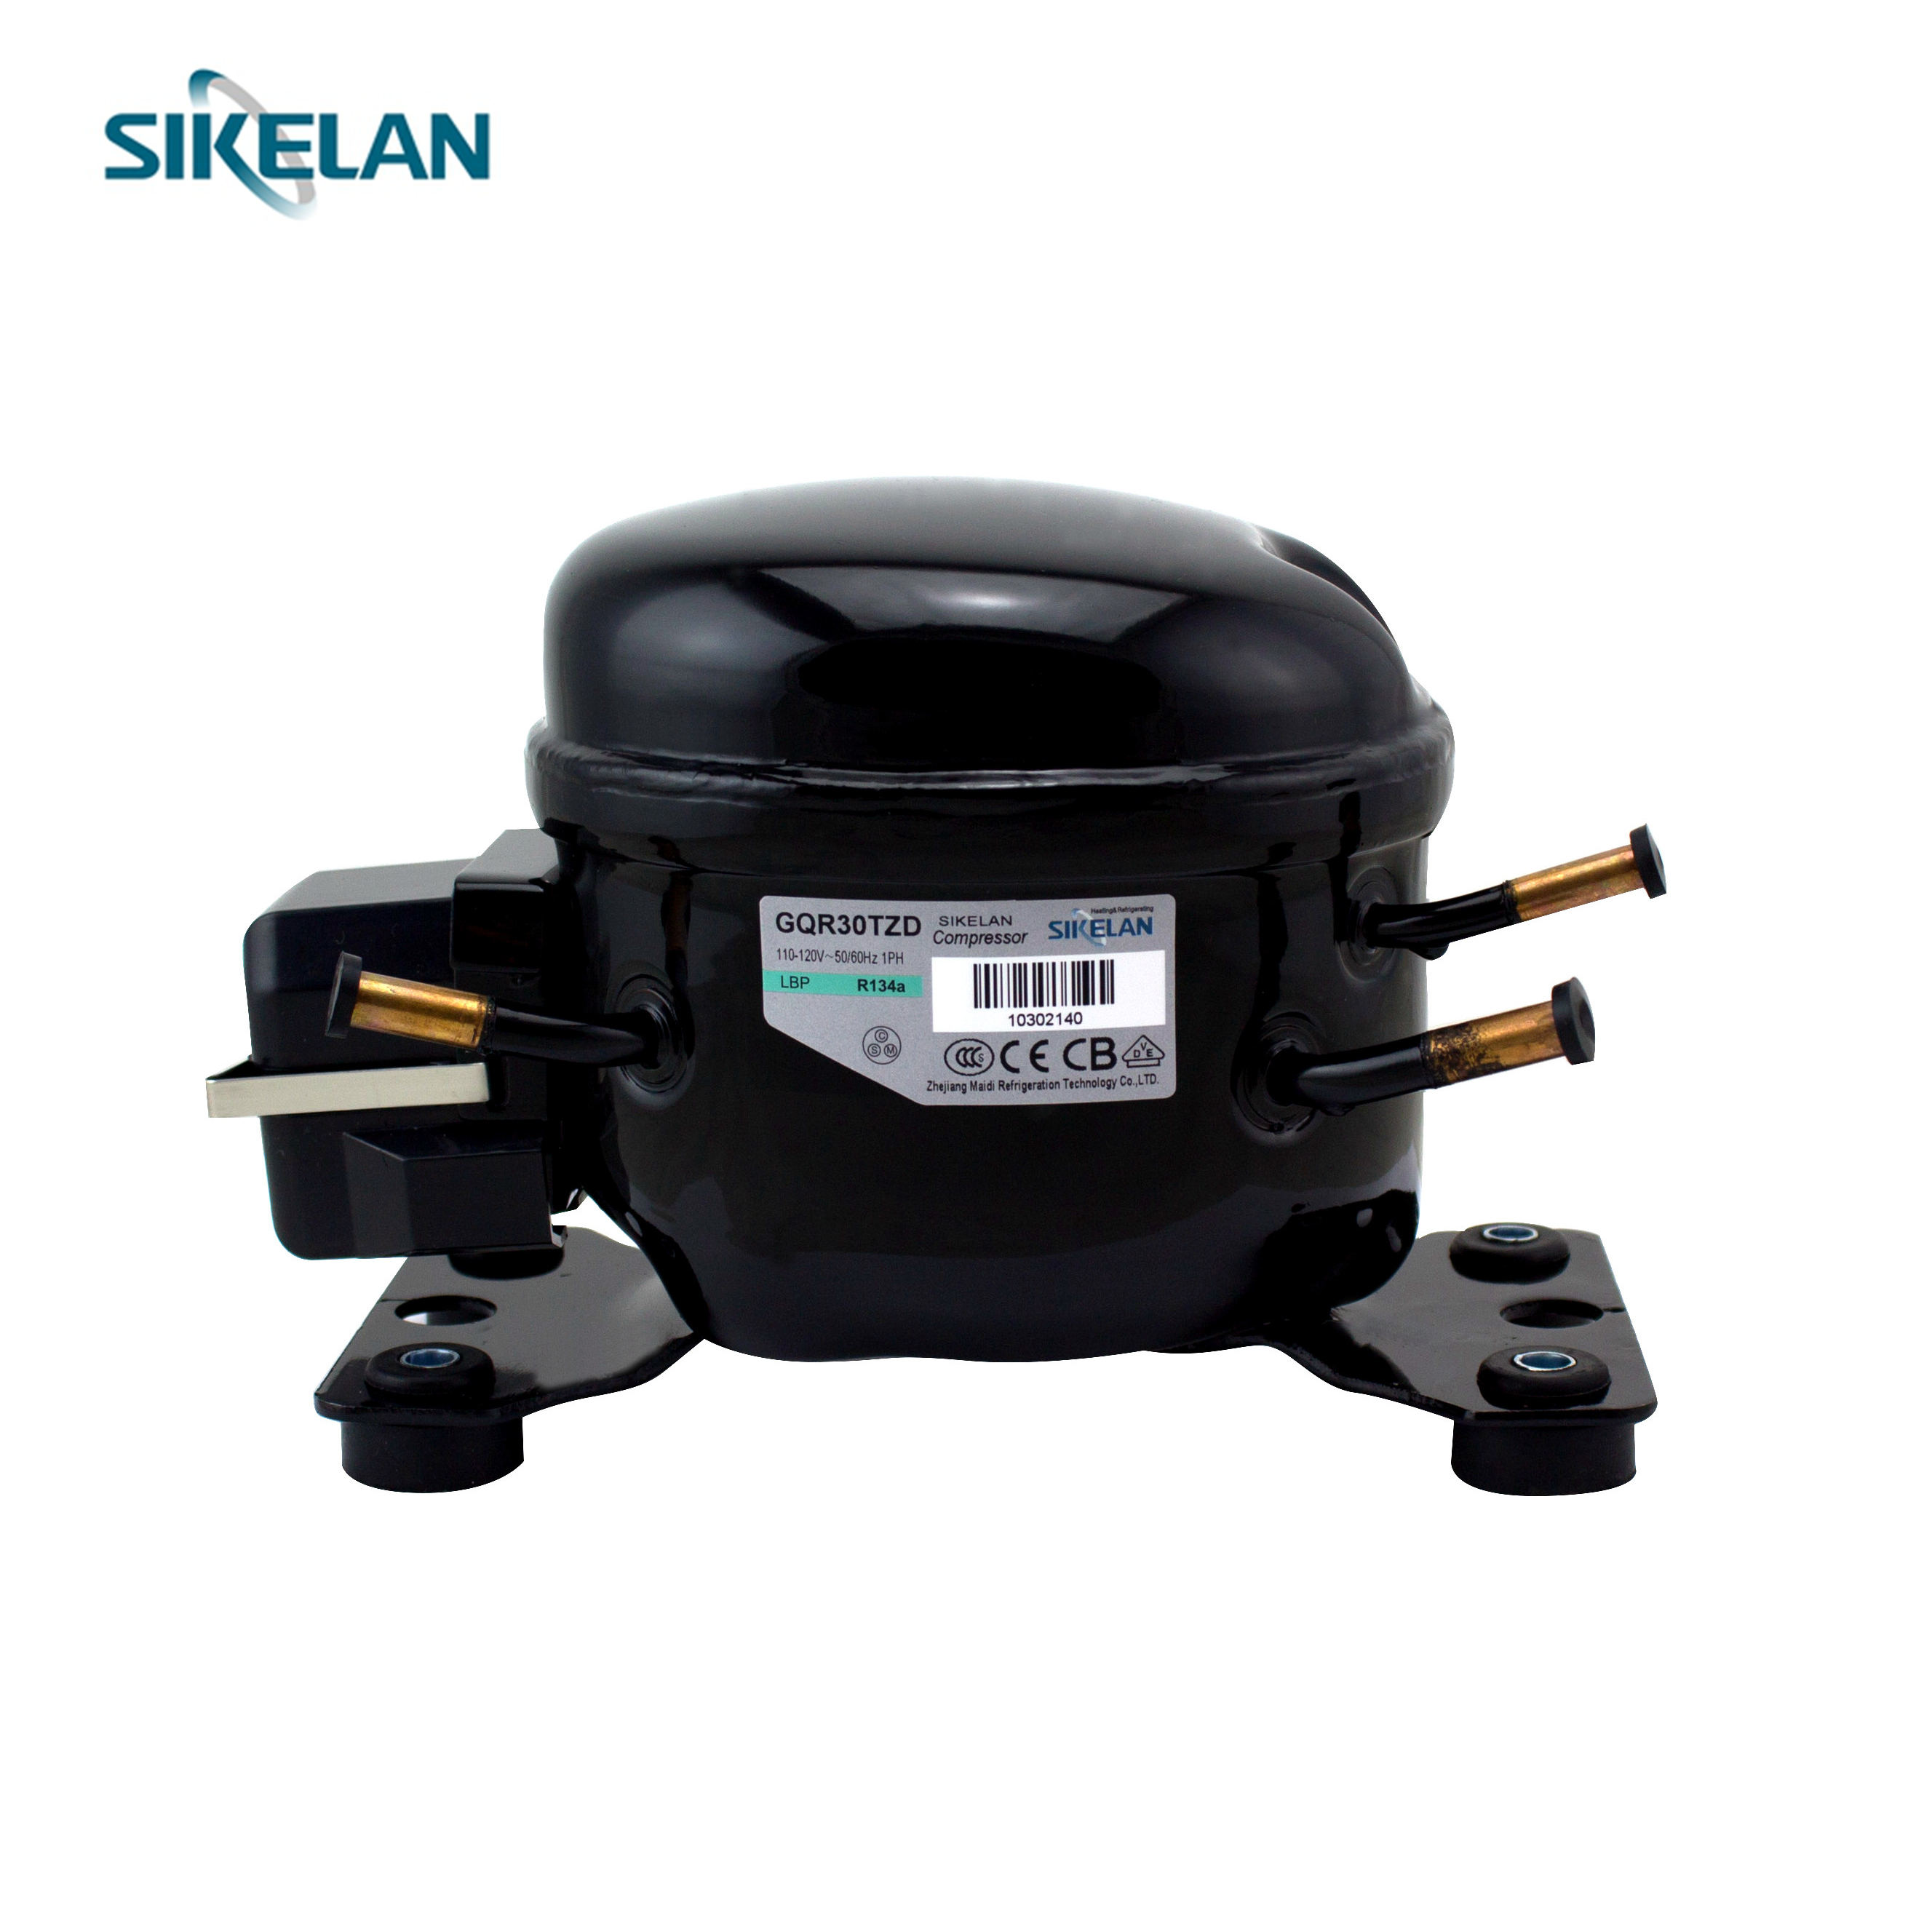 ice maker parts compressor L-GQR30TZD R134a compressor MBP 165W